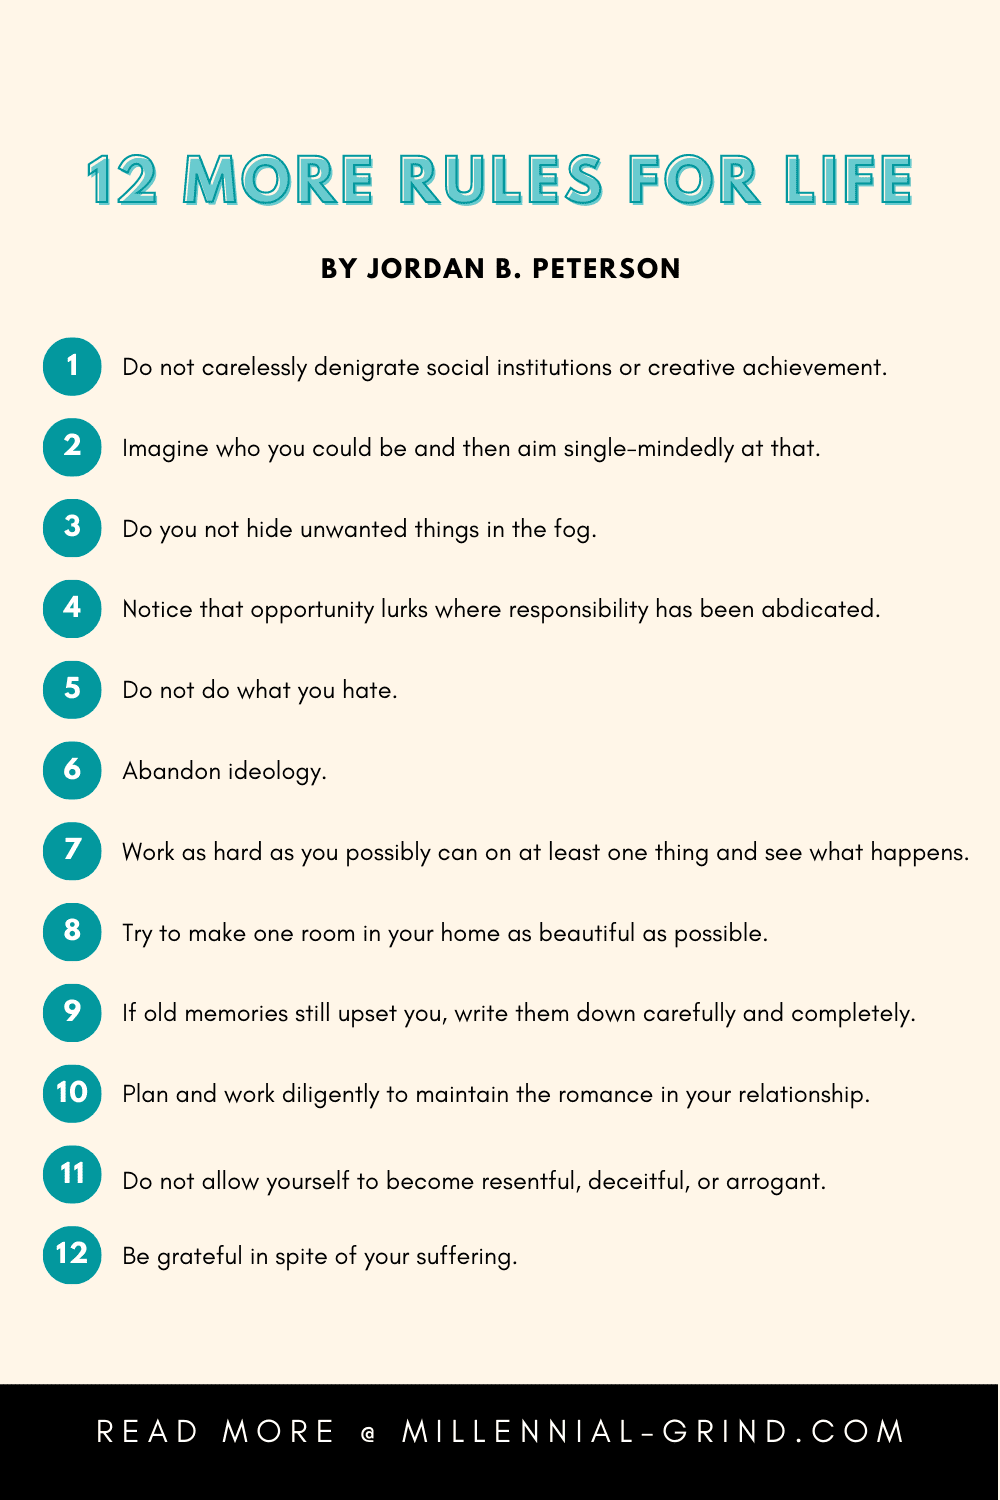 Jordan Peterson's List of 12 More Rules For Life